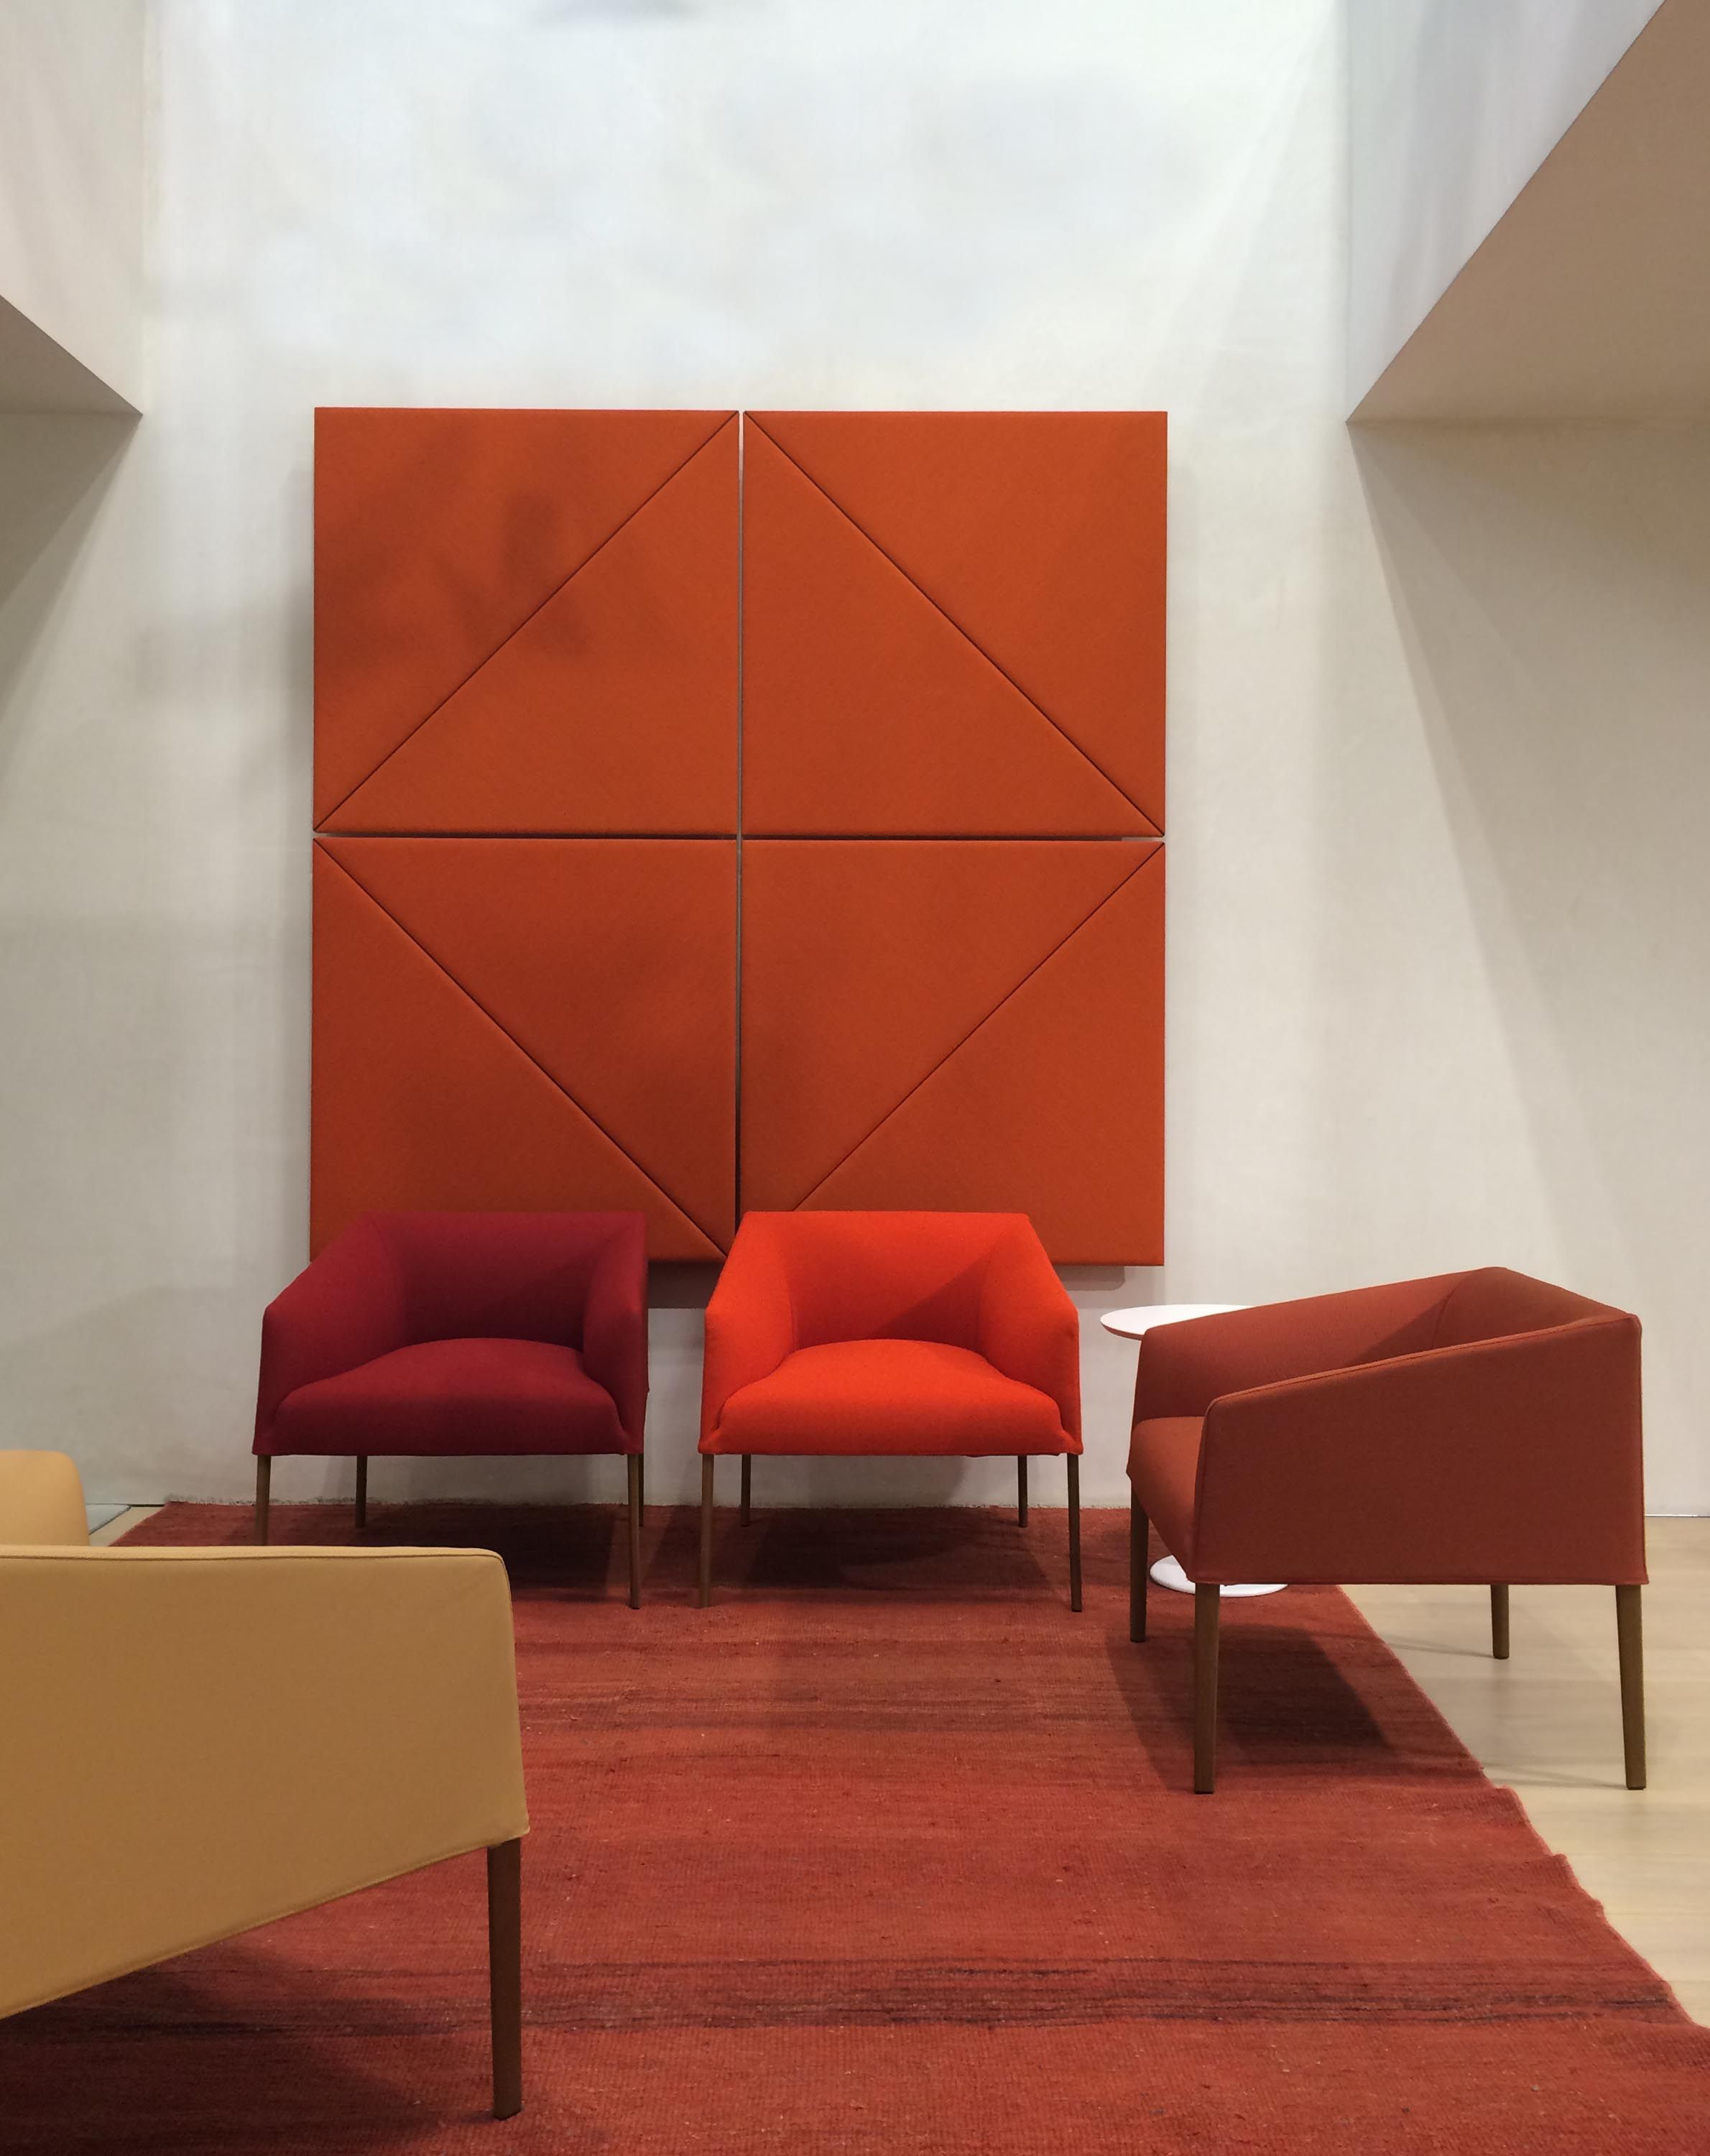 fice with Parentesit wall panels and Saari chairs both by